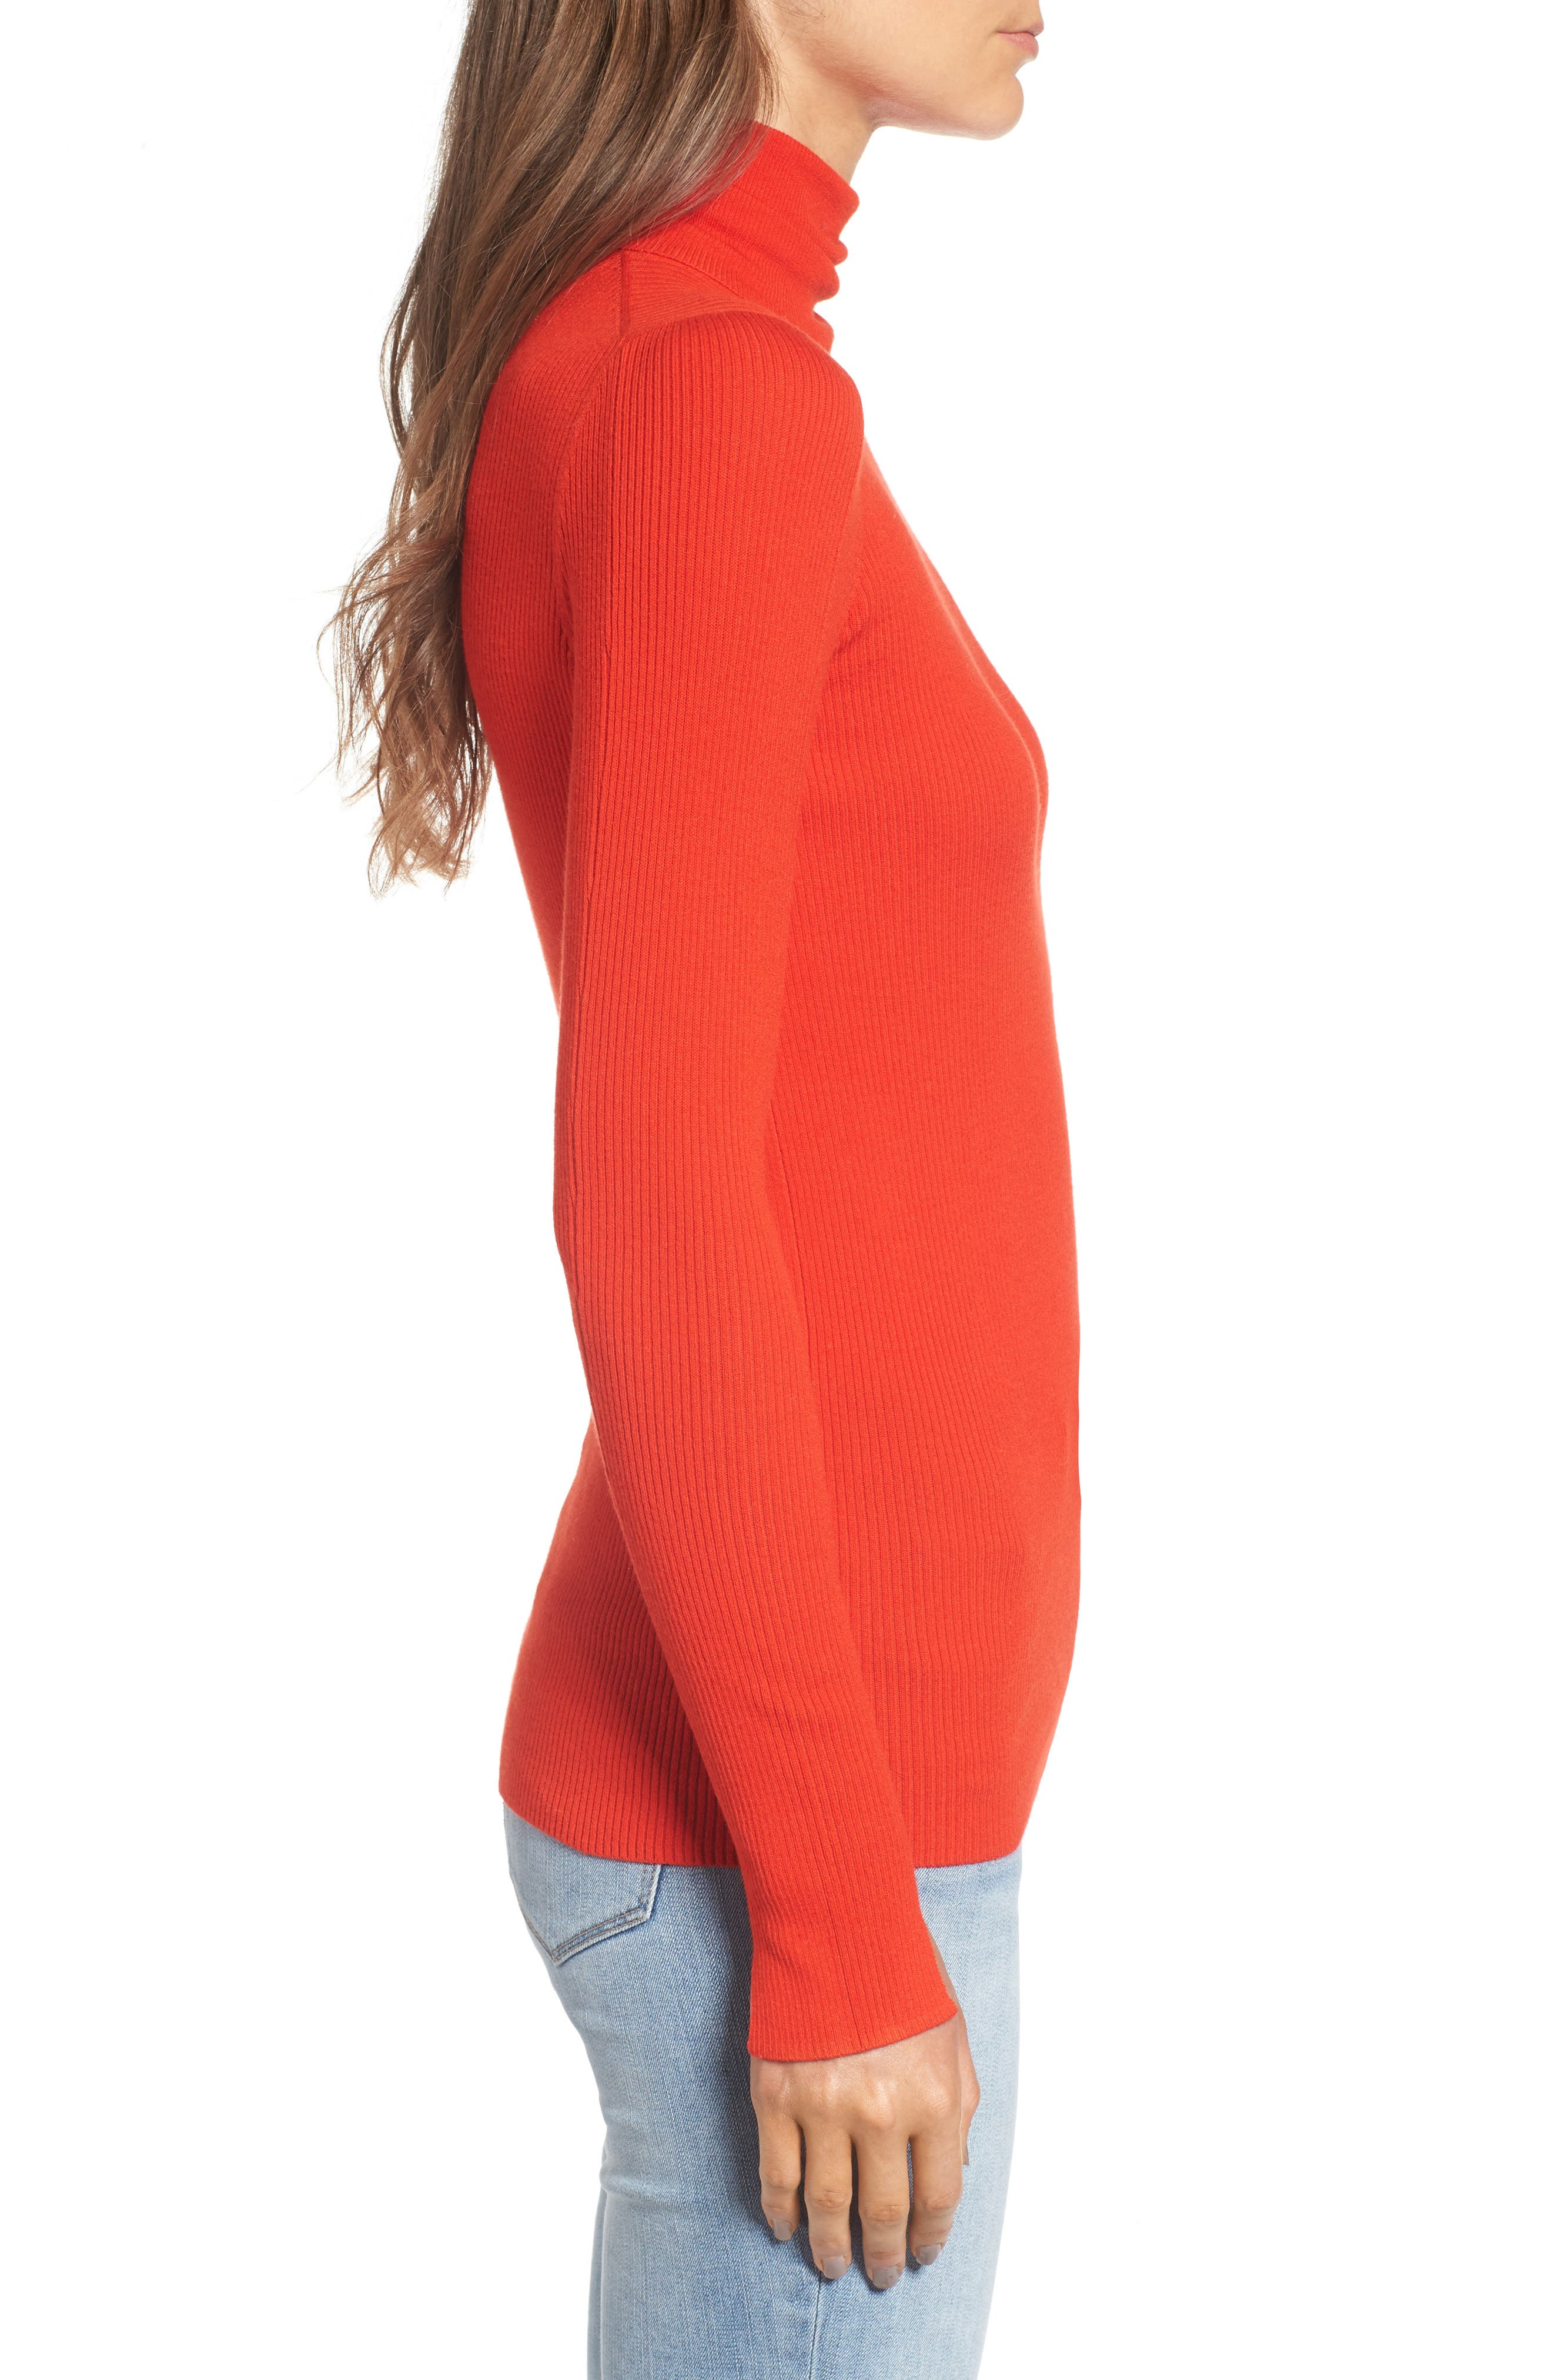 x Something Navy Turtleneck Sweater,                             Alternate thumbnail 4, color,                             Red Fiery